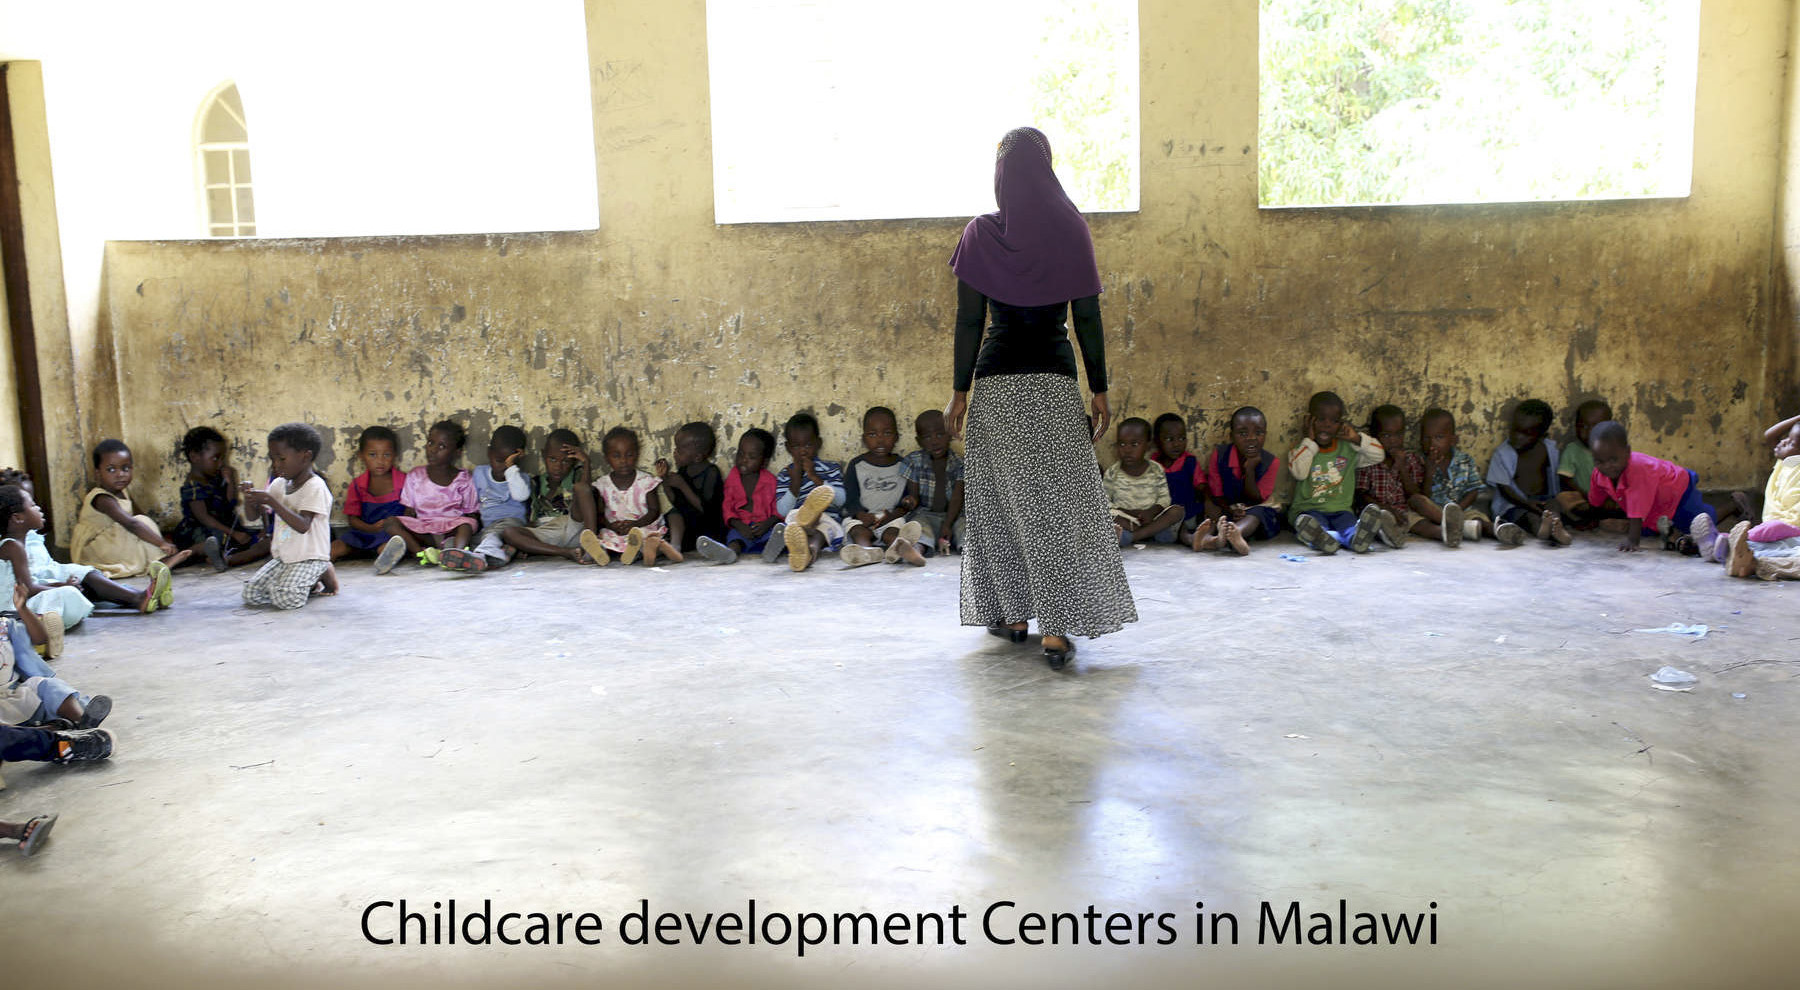 Childcare Centers in Malawi